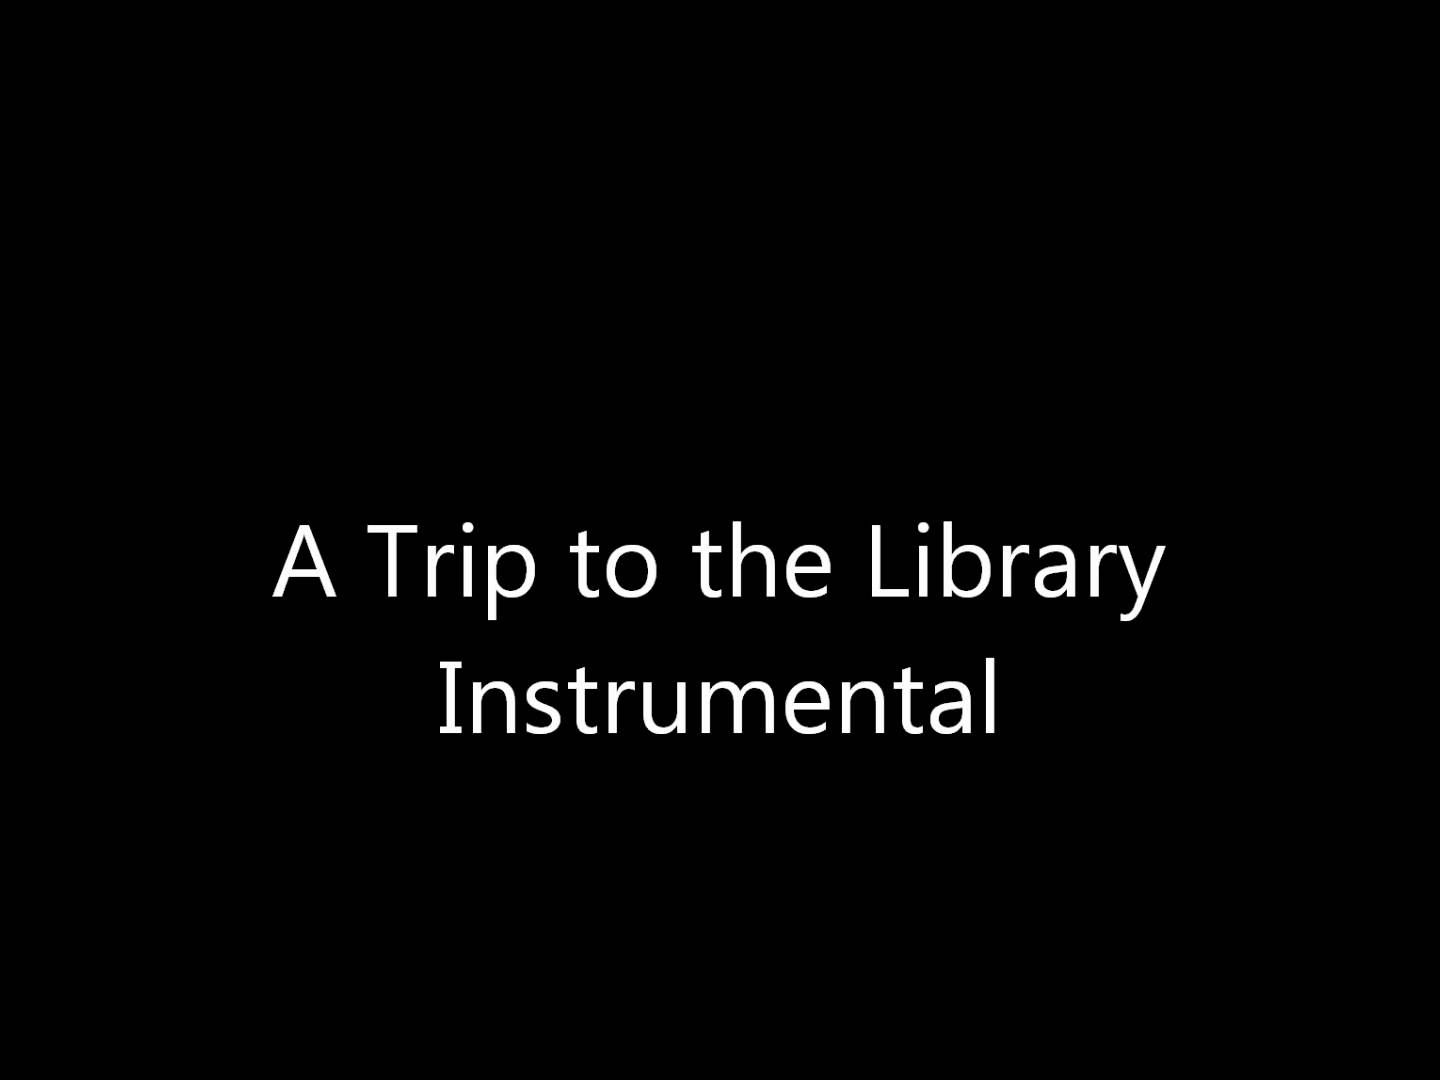 Trip to the Library